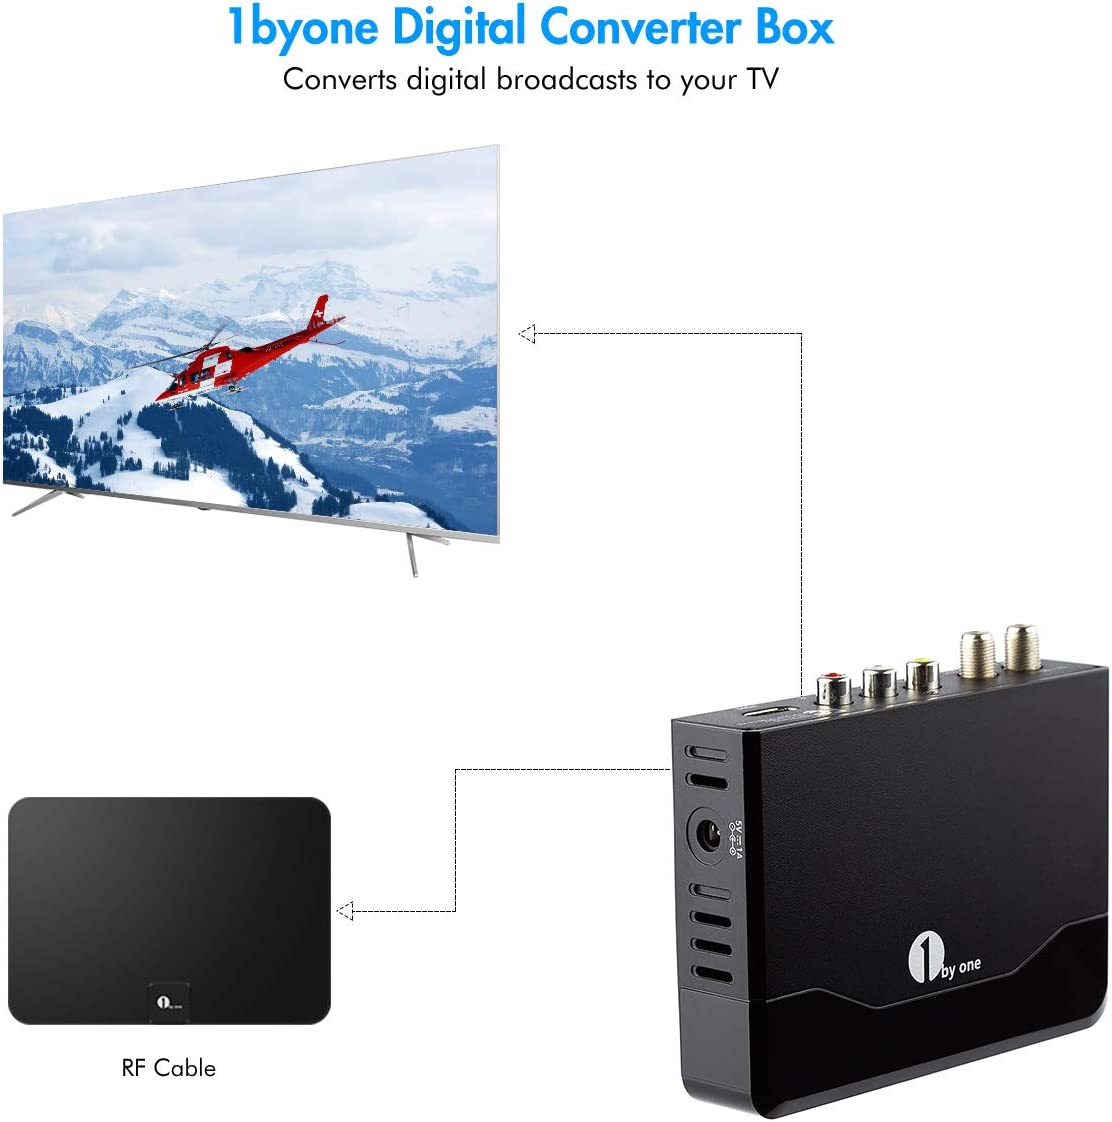 HDTV Set Top Box for 1080p Analog TV Converter Box with Record and Pause Live TV New Version Remote Control 1byone ATSC Digital Converter Box for Analog TV -Black